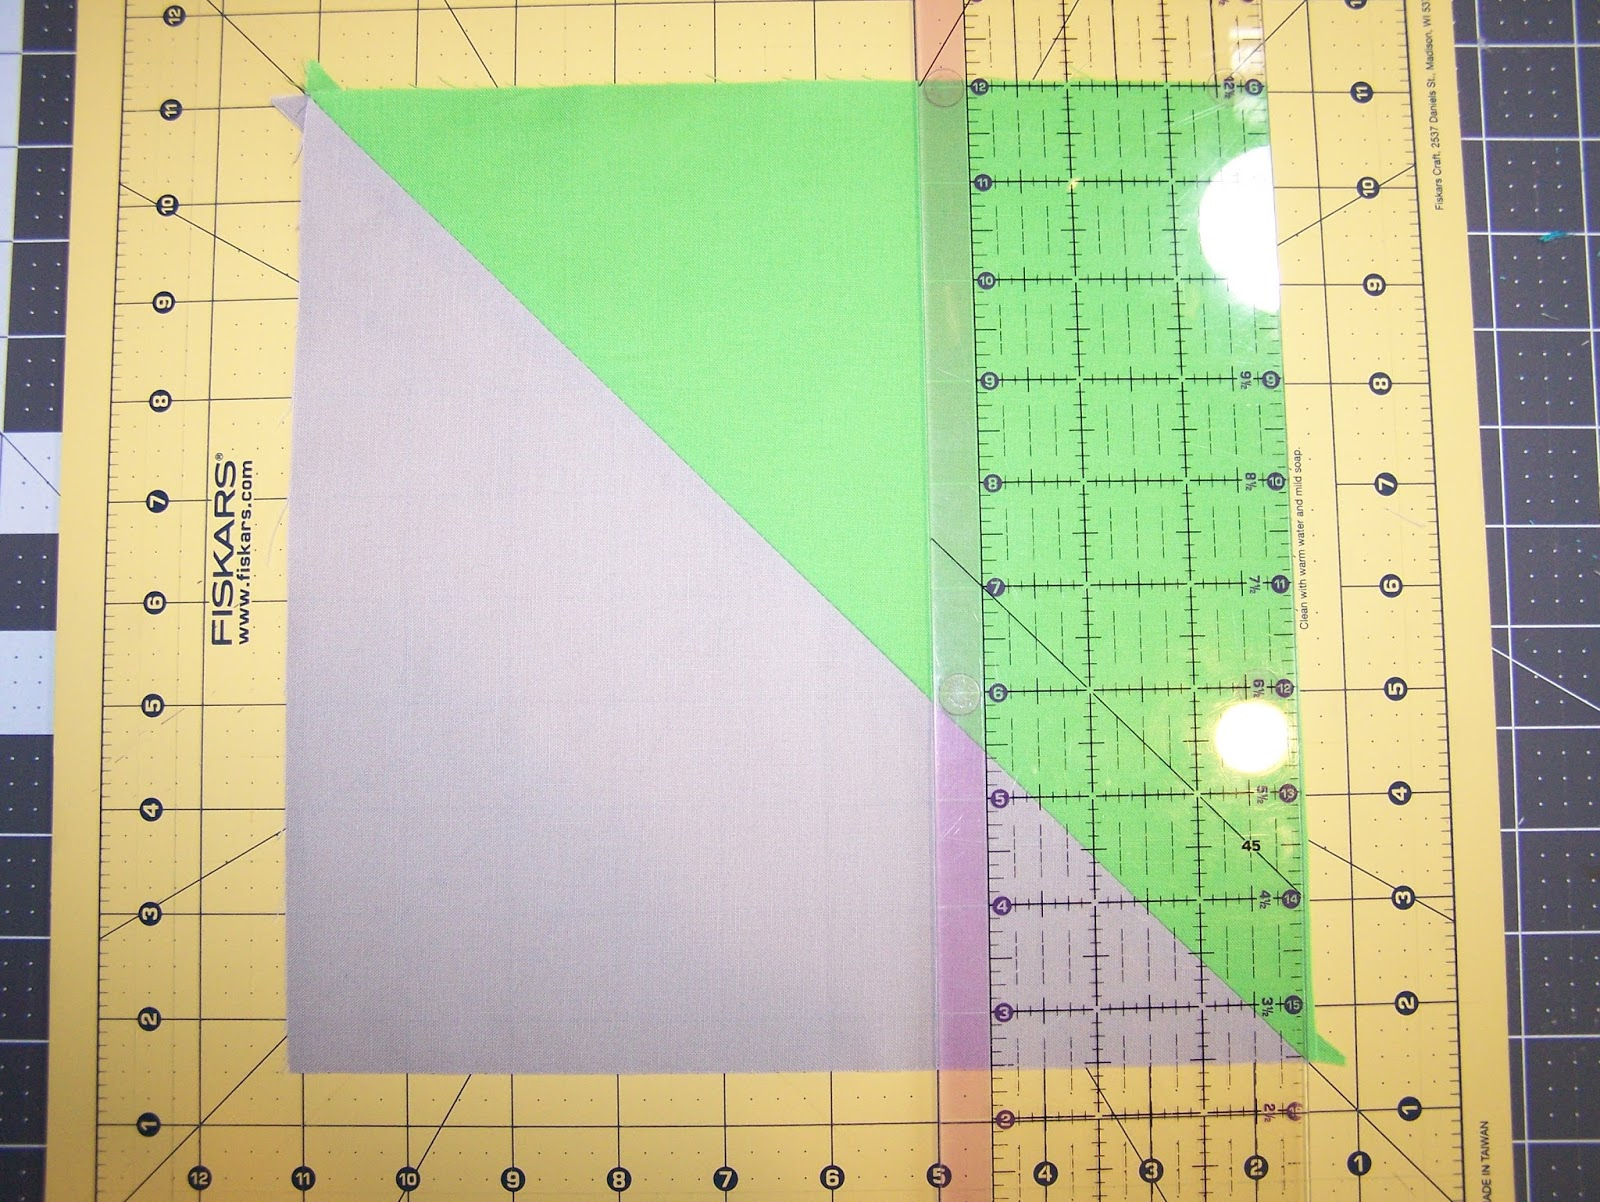 how to cut a square in half 4 times